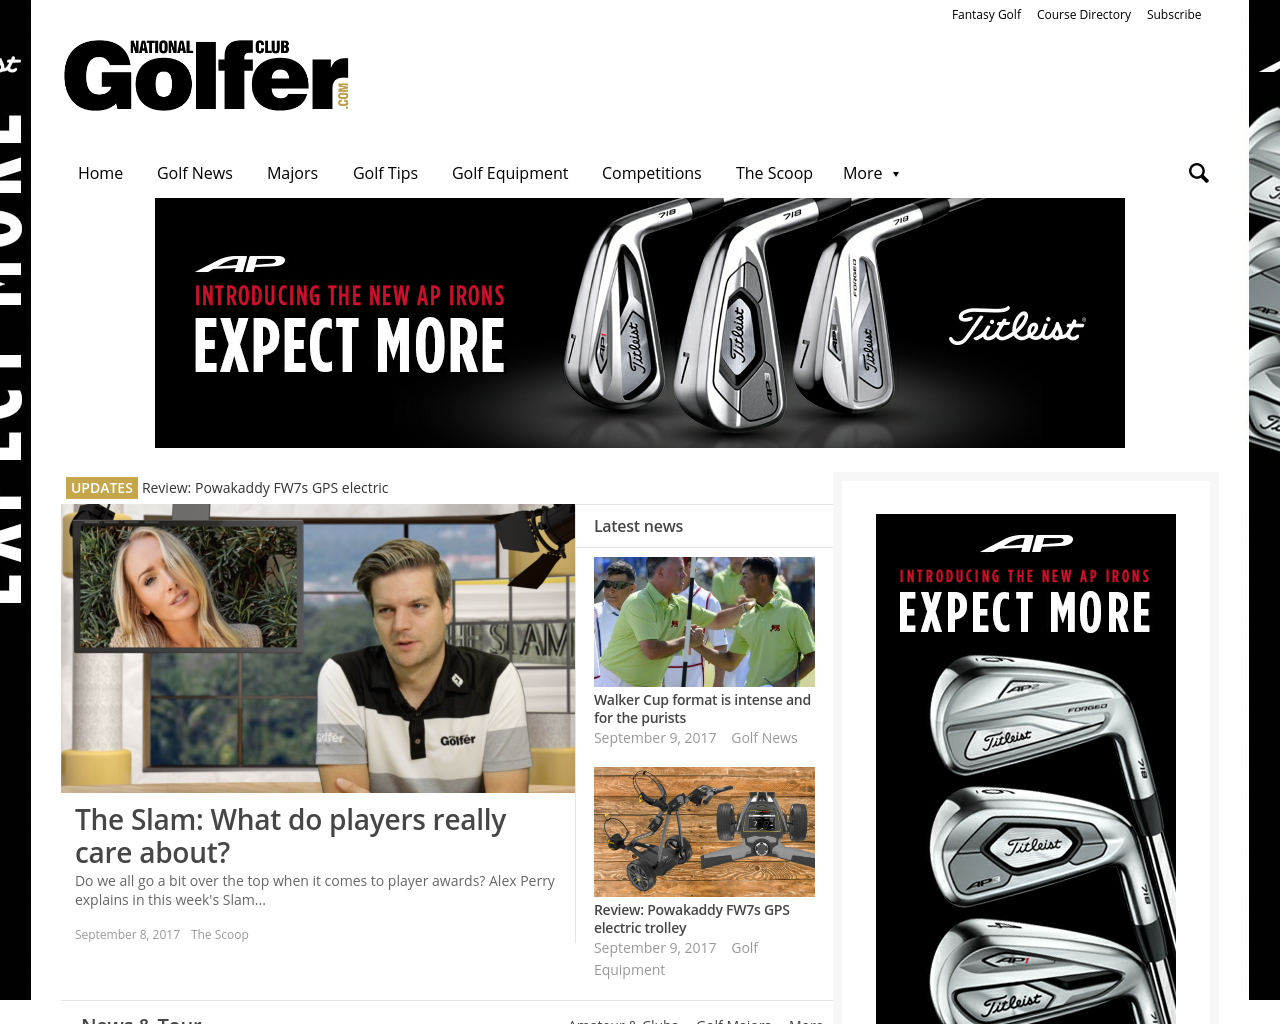 National-Club-Golfer-Advertising-Reviews-Pricing